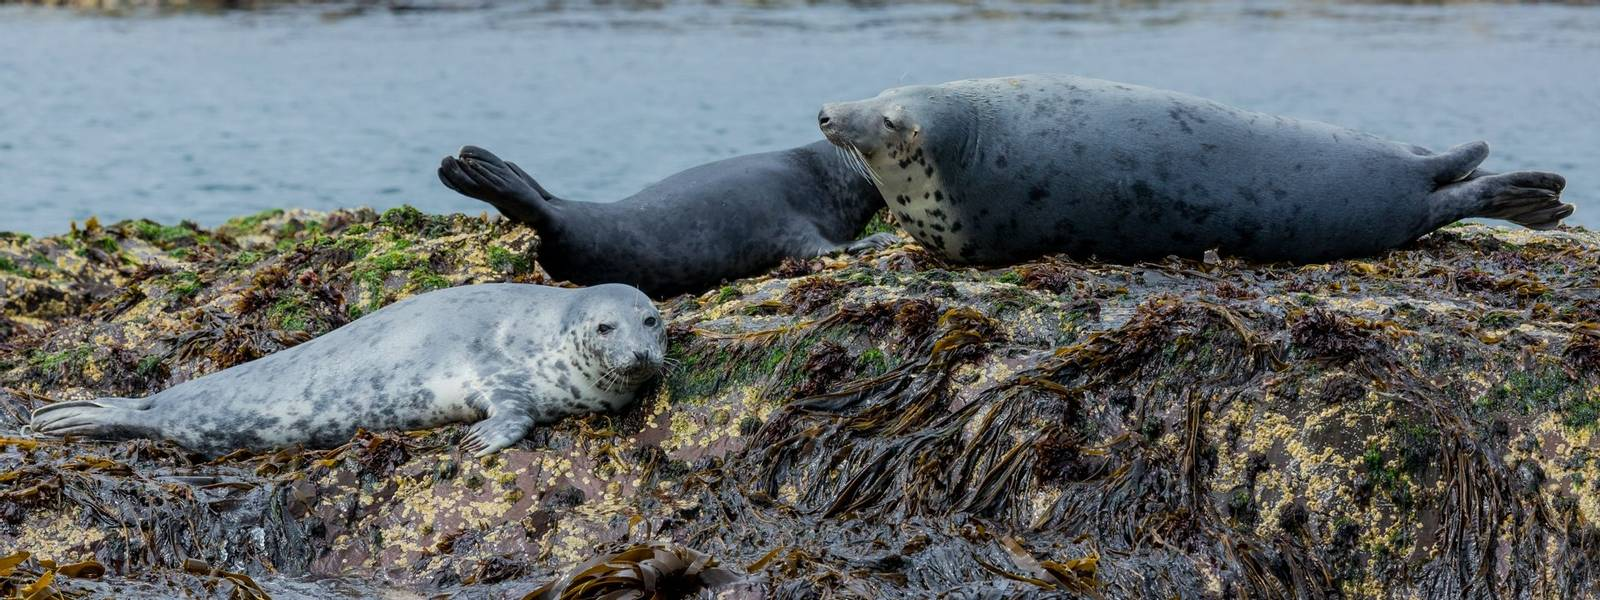 Alnmouth - Wildlife - Grey Seals - AdobeStock_213353117.jpeg